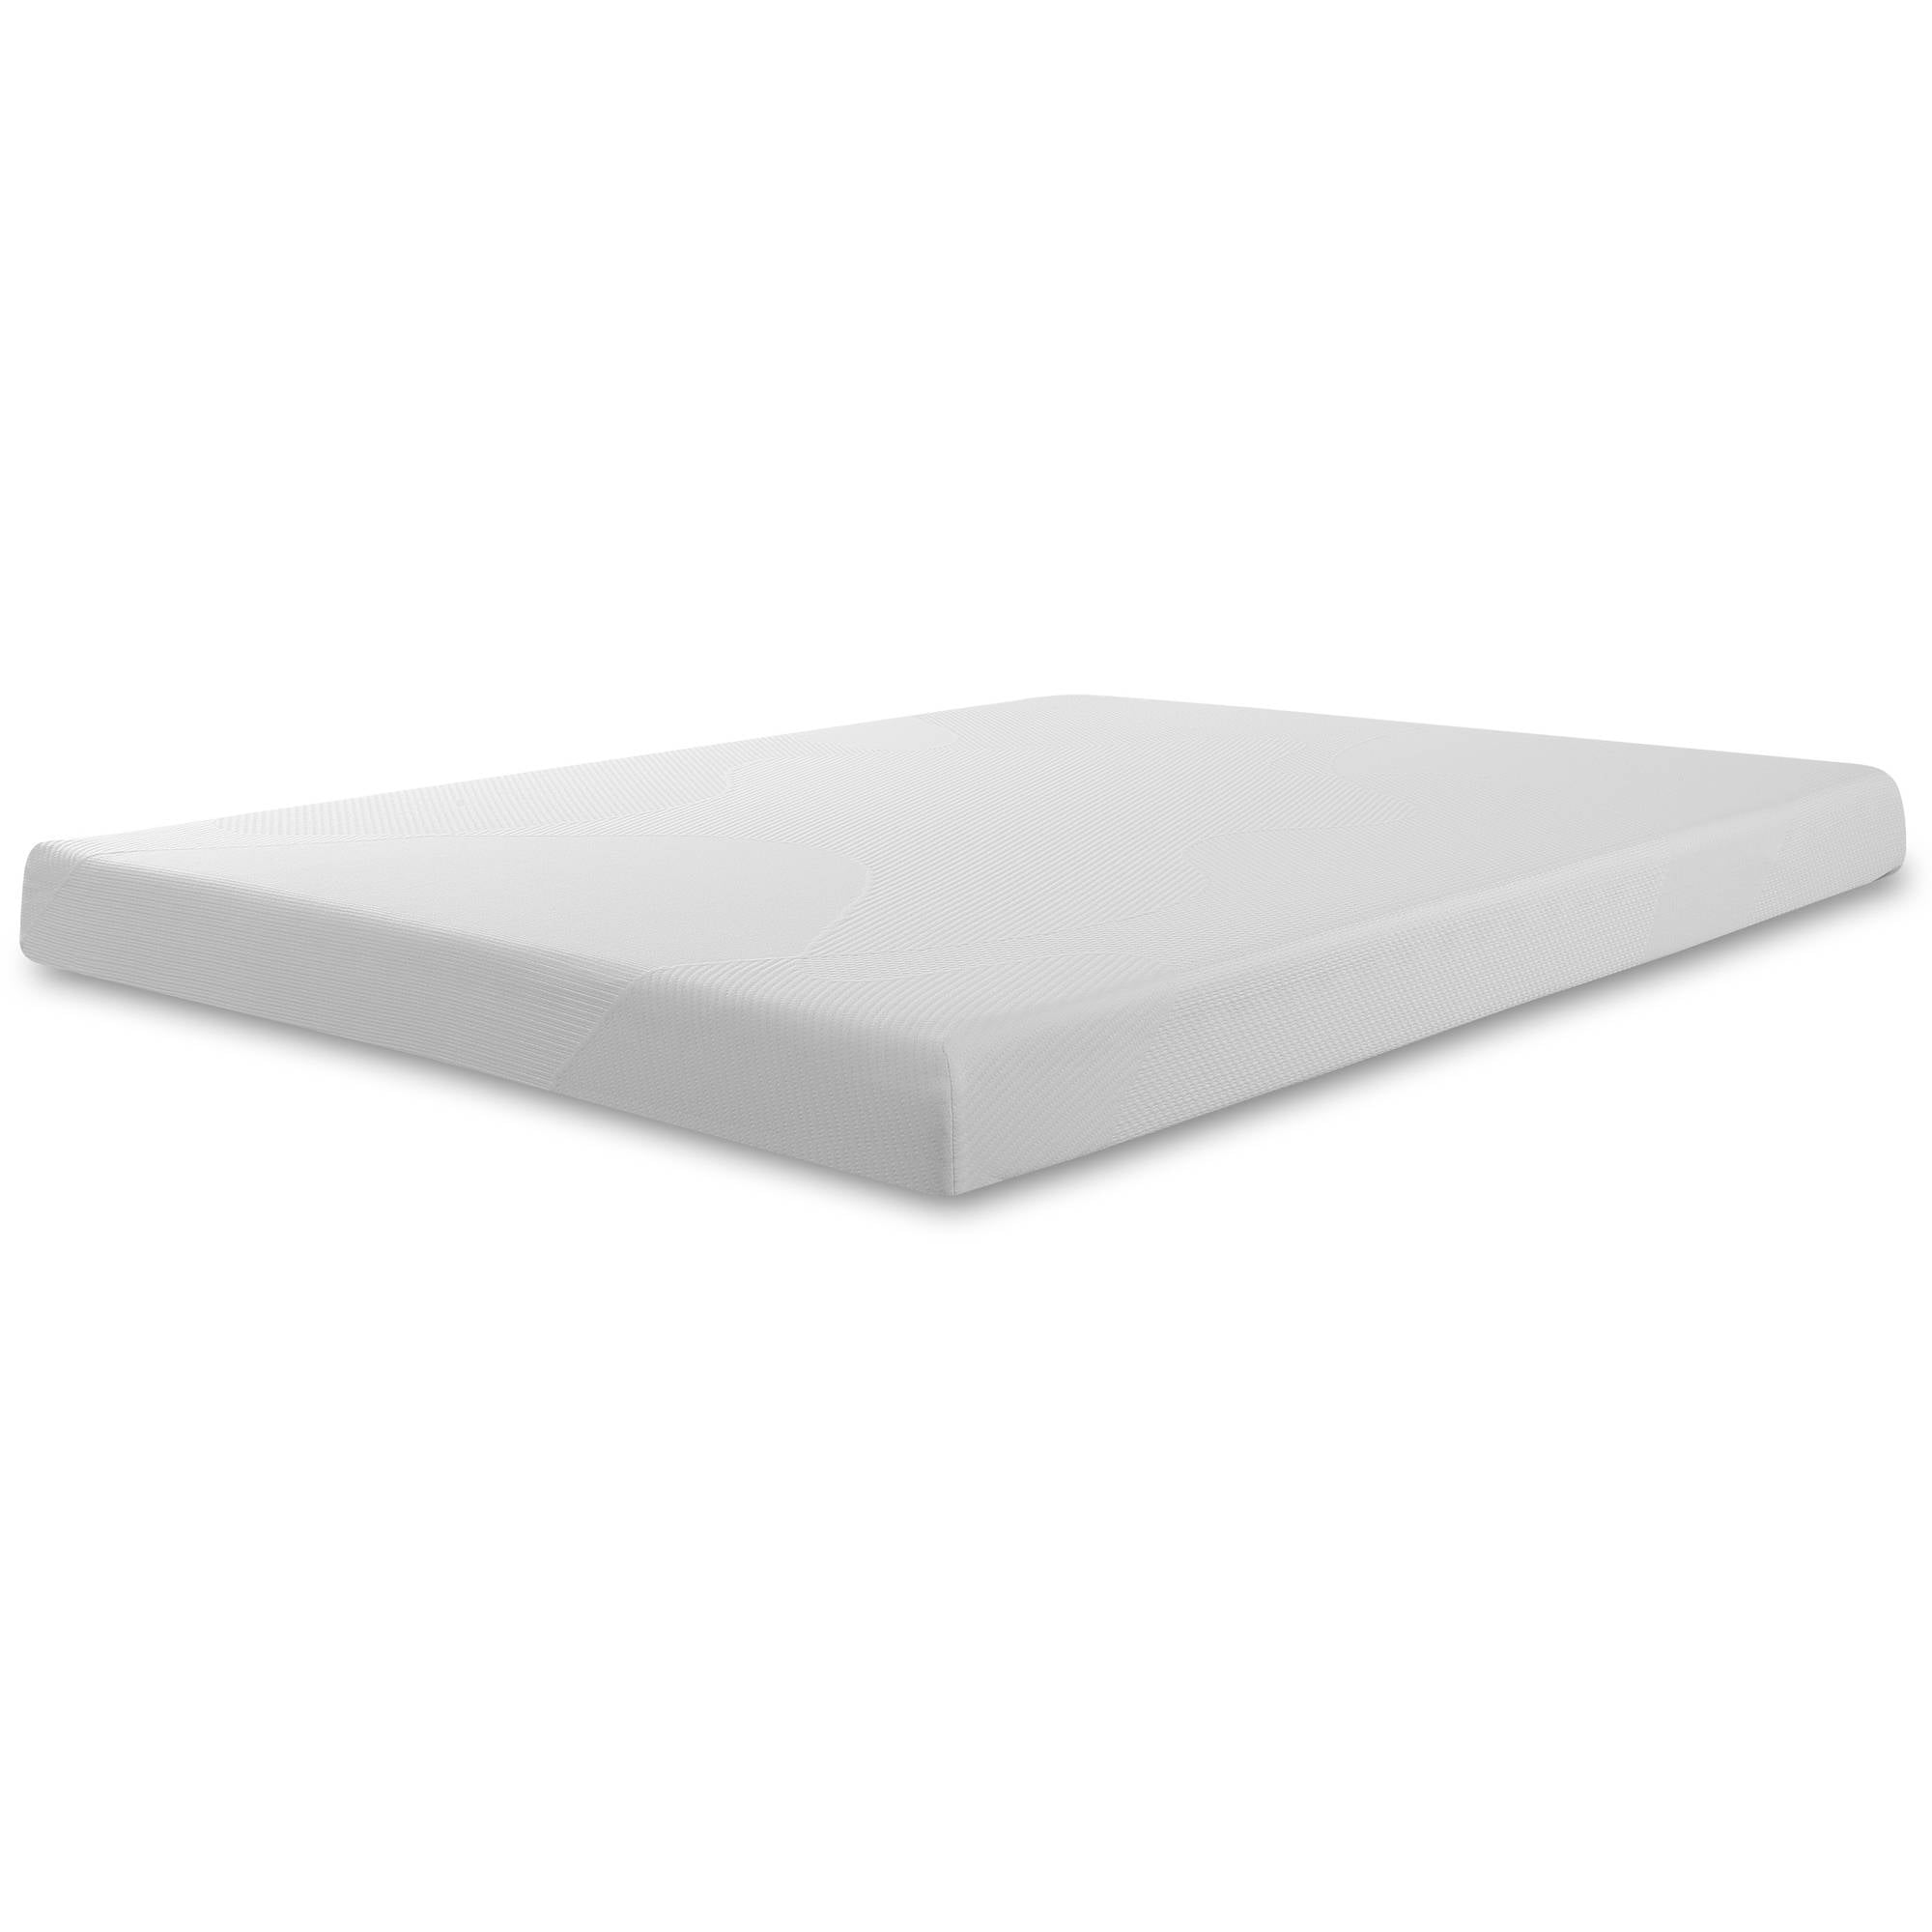 Spa sensation 6 39 39 memory foam mattress xl twin full queen king size firm bedroom ebay Memory foam king mattress